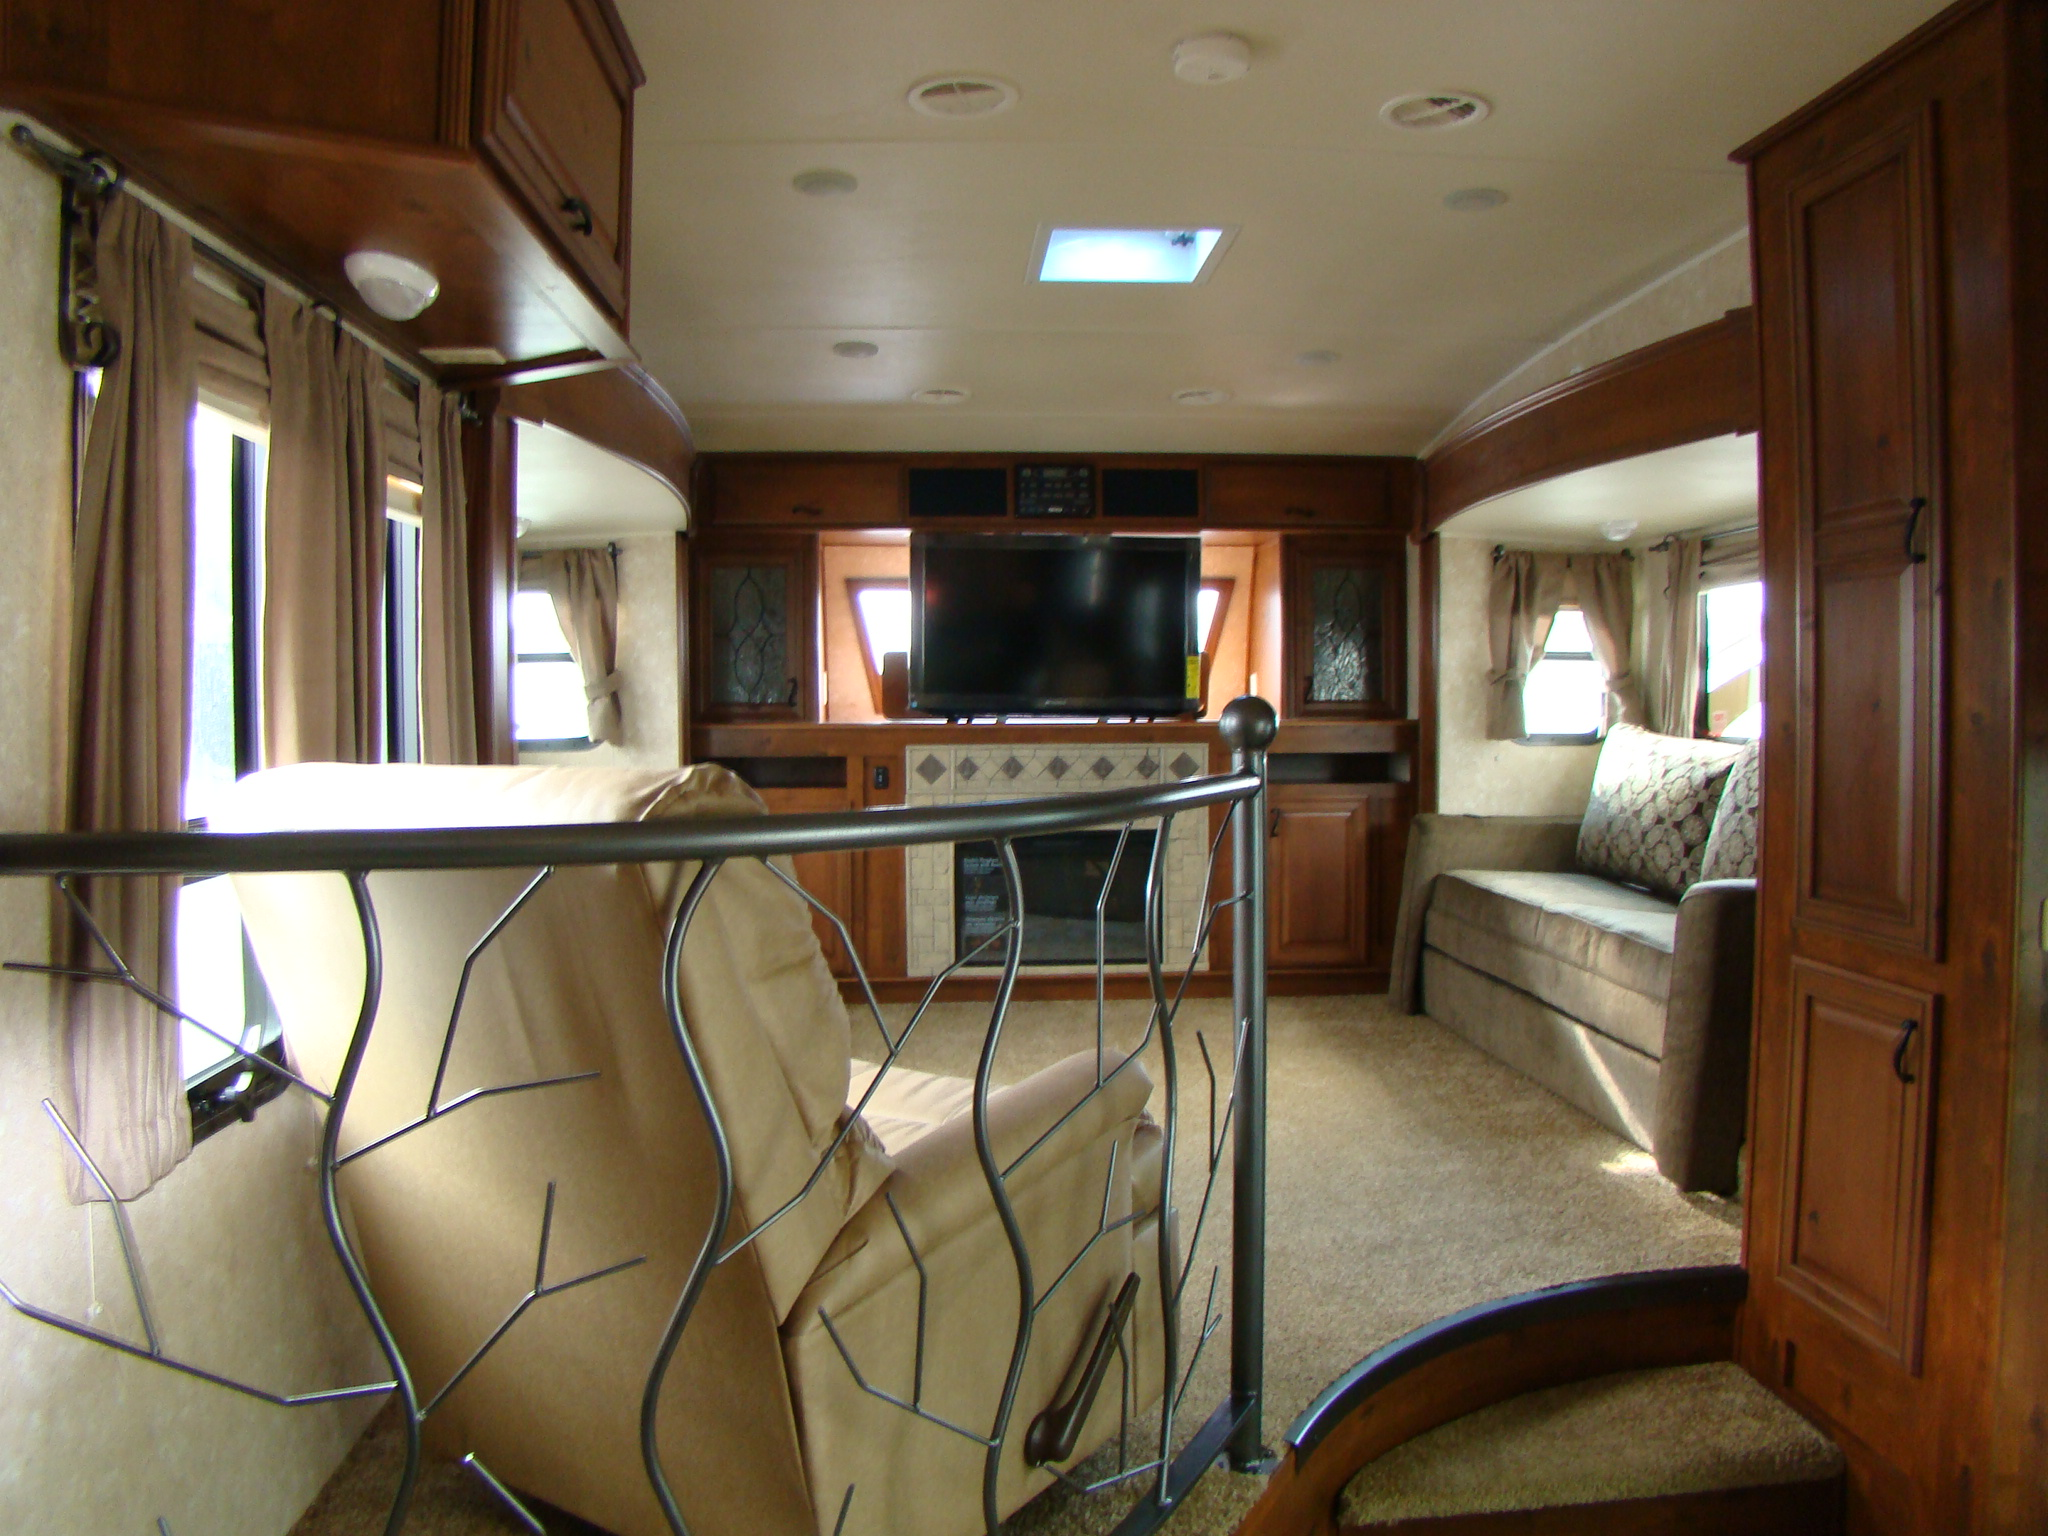 5th wheel camper rving is easy at lerch rv - Front living room fifth wheel used ...